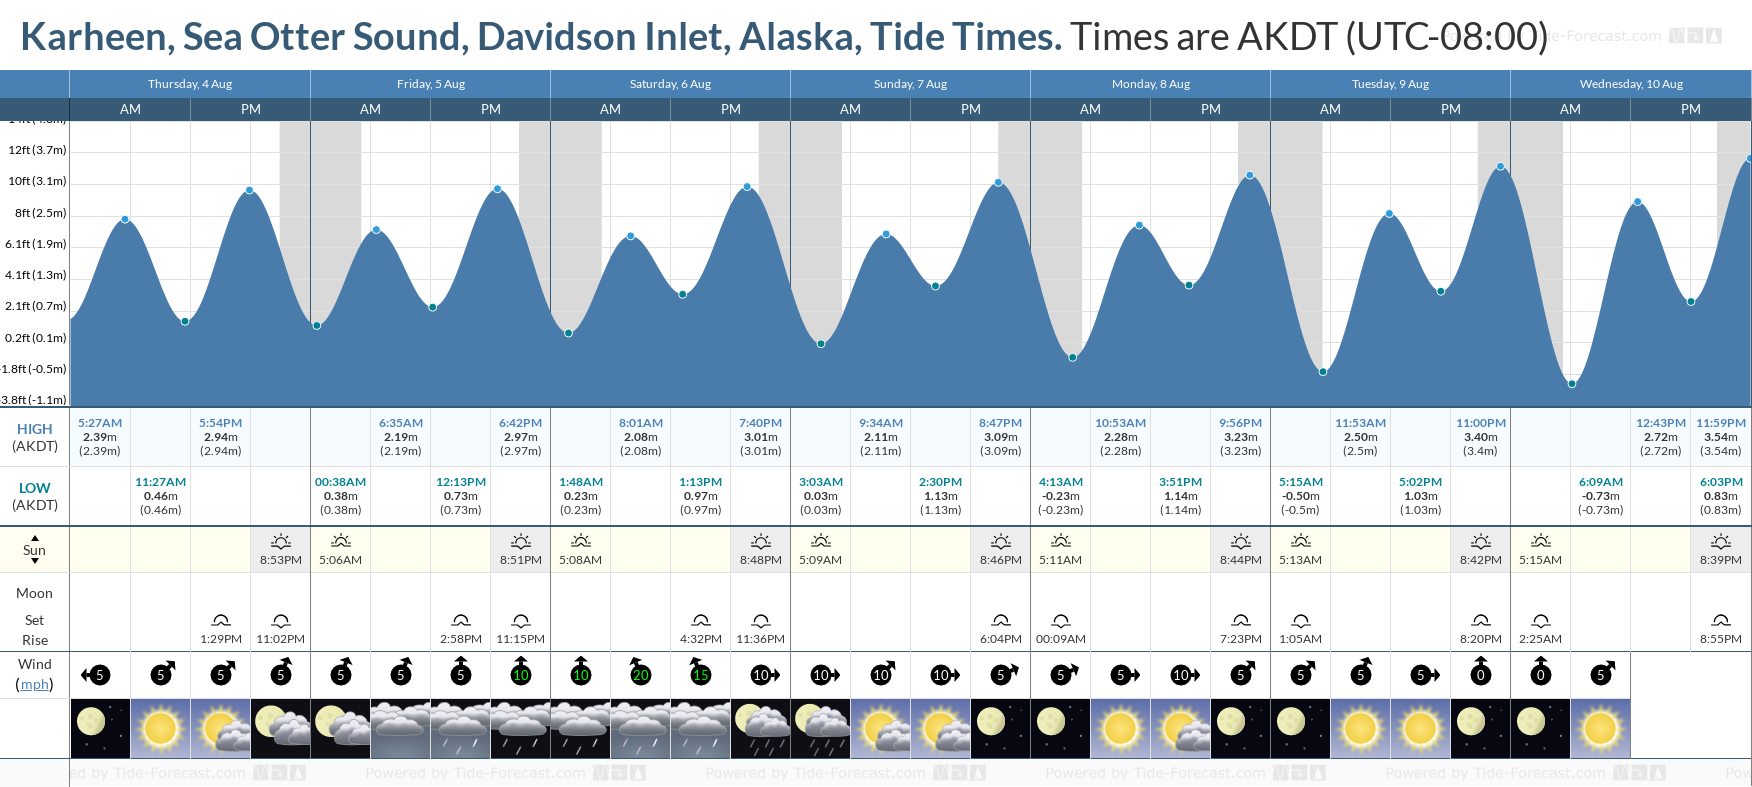 Karheen, Sea Otter Sound, Davidson Inlet, Alaska Tide Chart including high and low tide tide times for the next 7 days